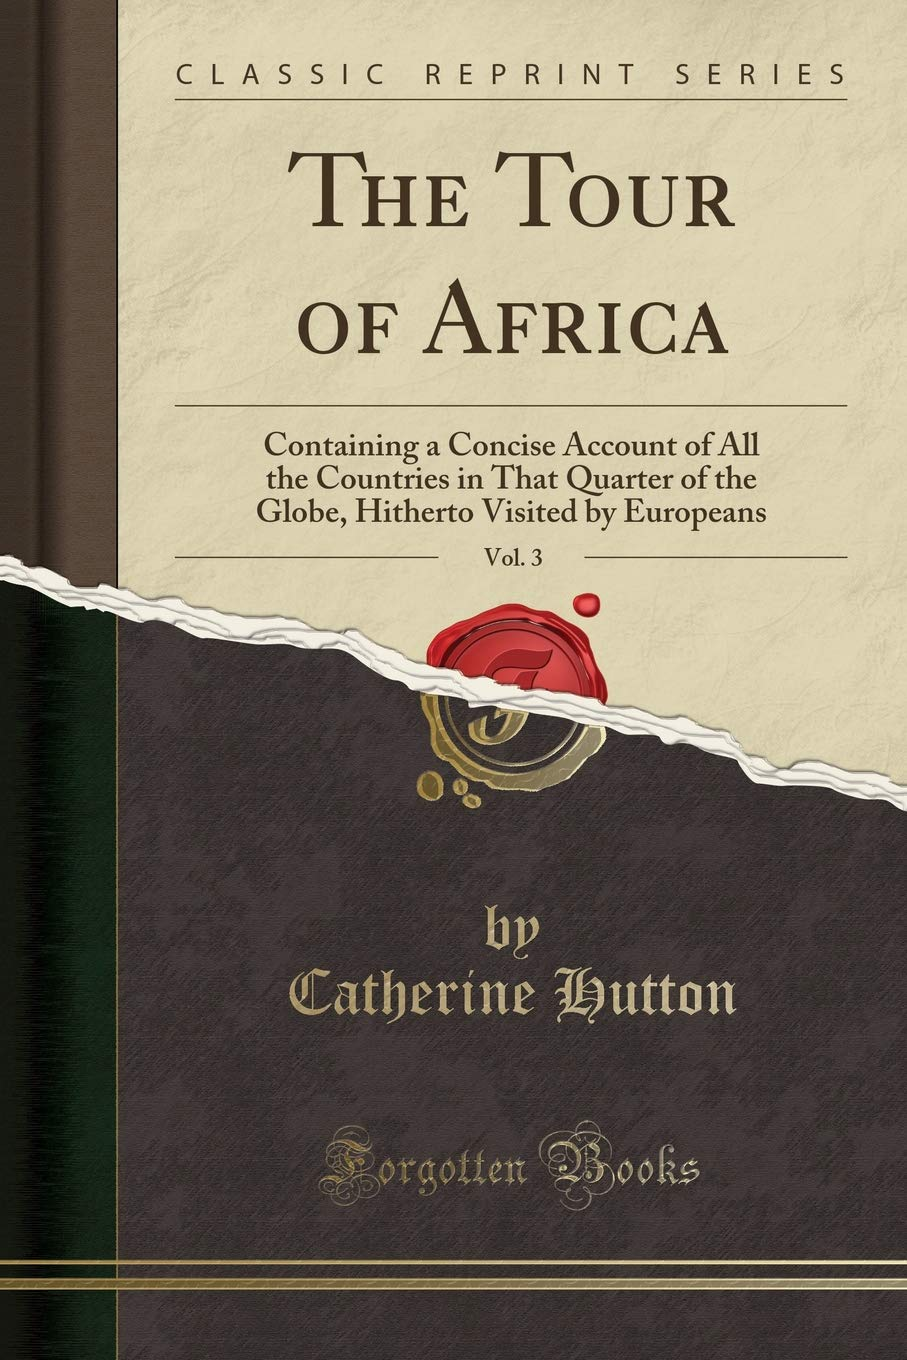 Download The Tour of Africa, Vol. 3: Containing a Concise Account of All the Countries in That Quarter of the Globe, Hitherto Visited by Europeans (Classic Reprint) PDF